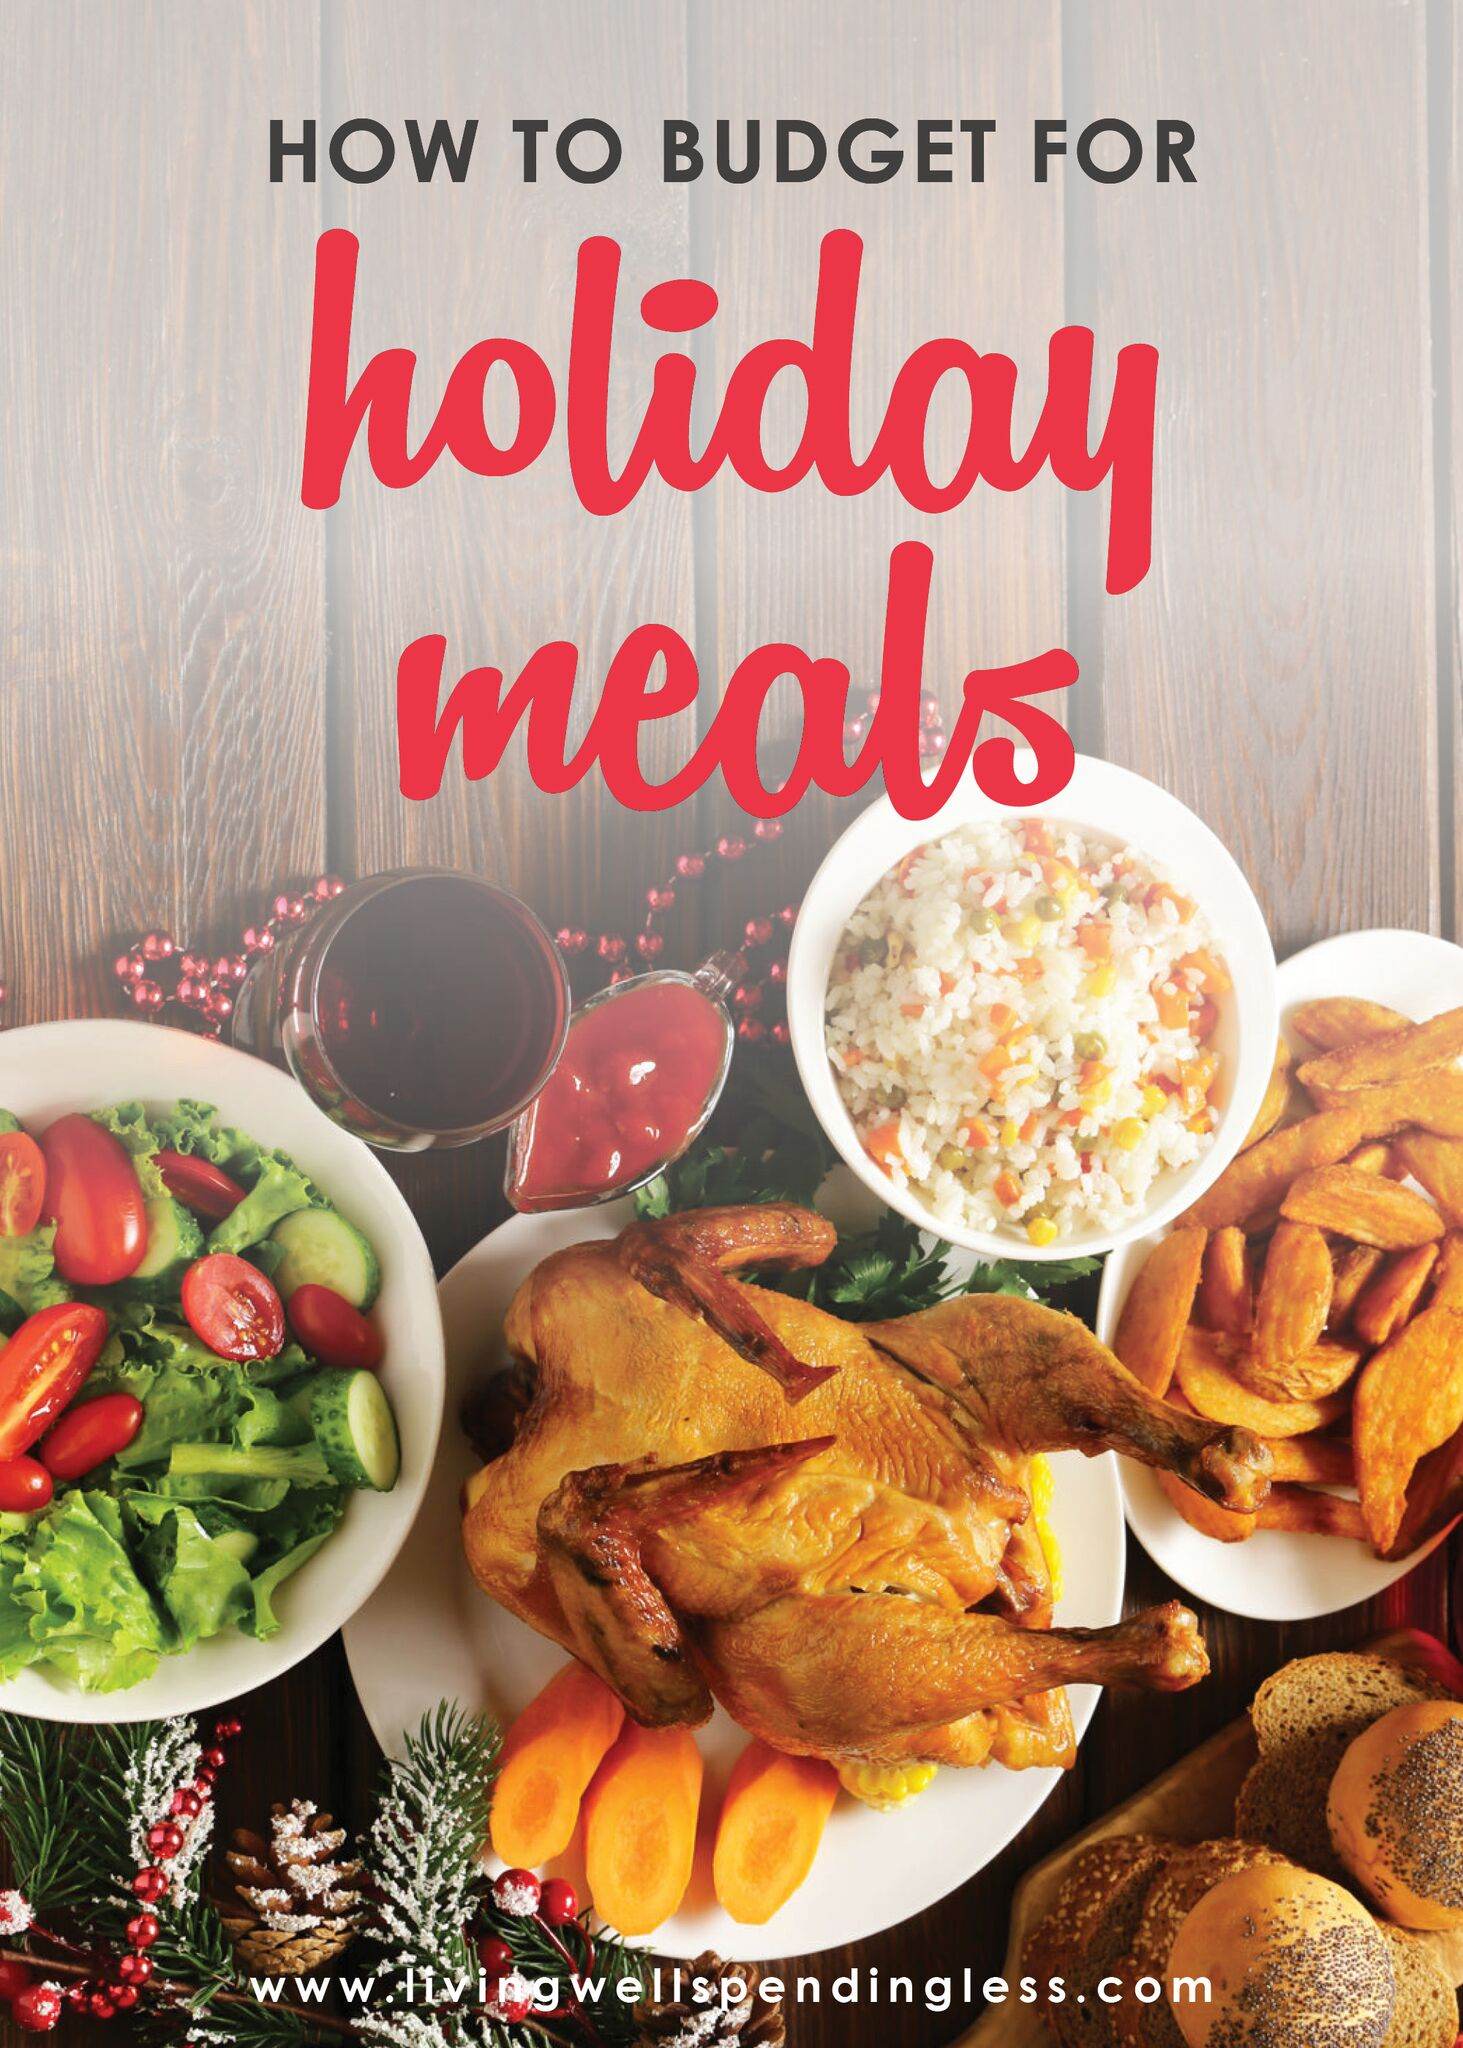 How to Budget for Holiday Meals